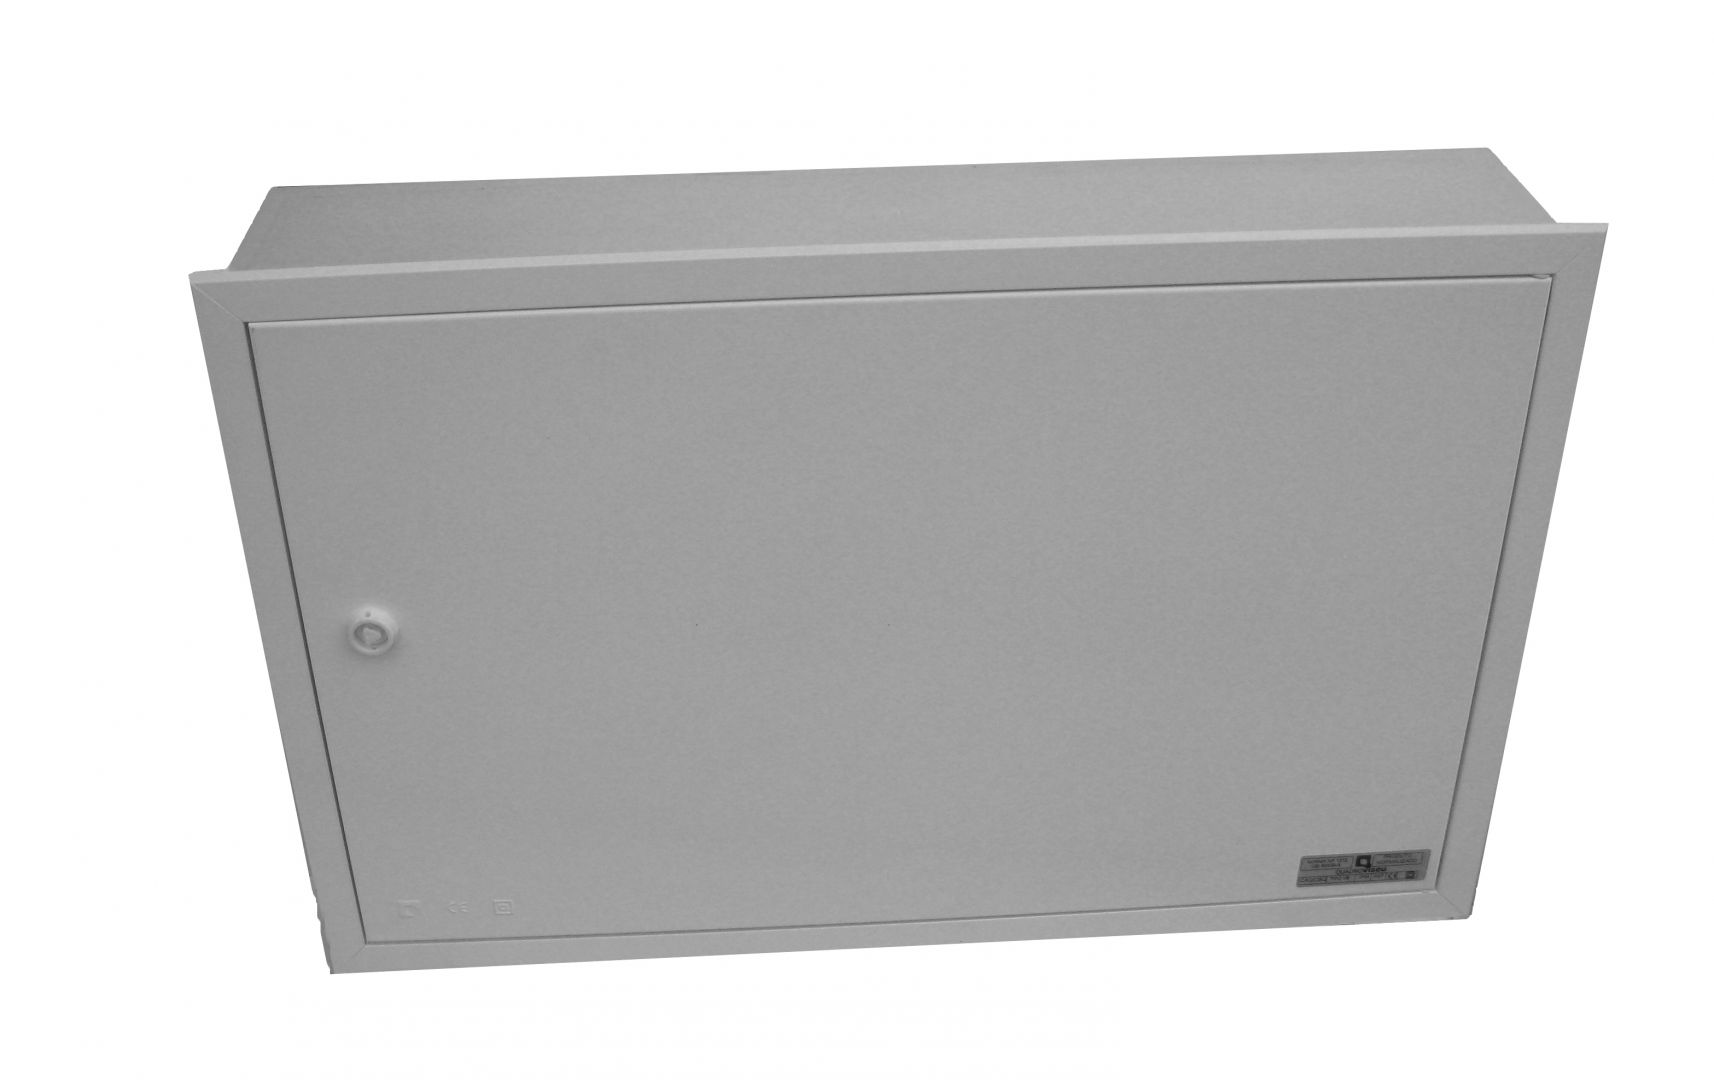 EMPTY BUILT-IN VISBOX BOX WITH DOOR AND FRAME 500X250X130